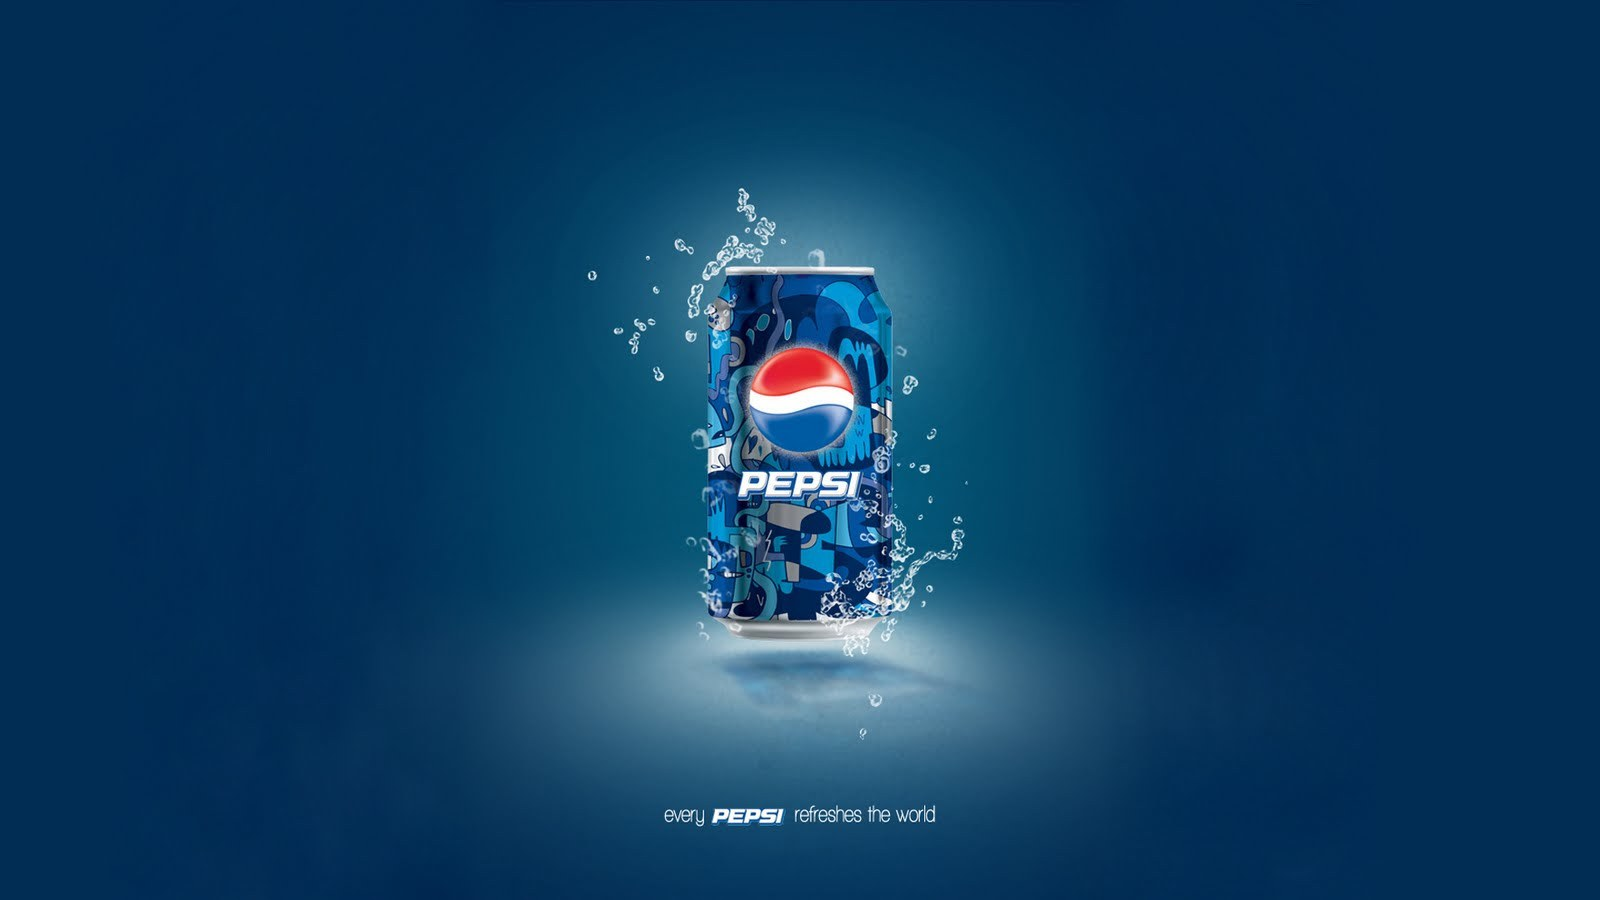 14636 download wallpaper Pepsi, Brands, Drinks screensavers and pictures for free